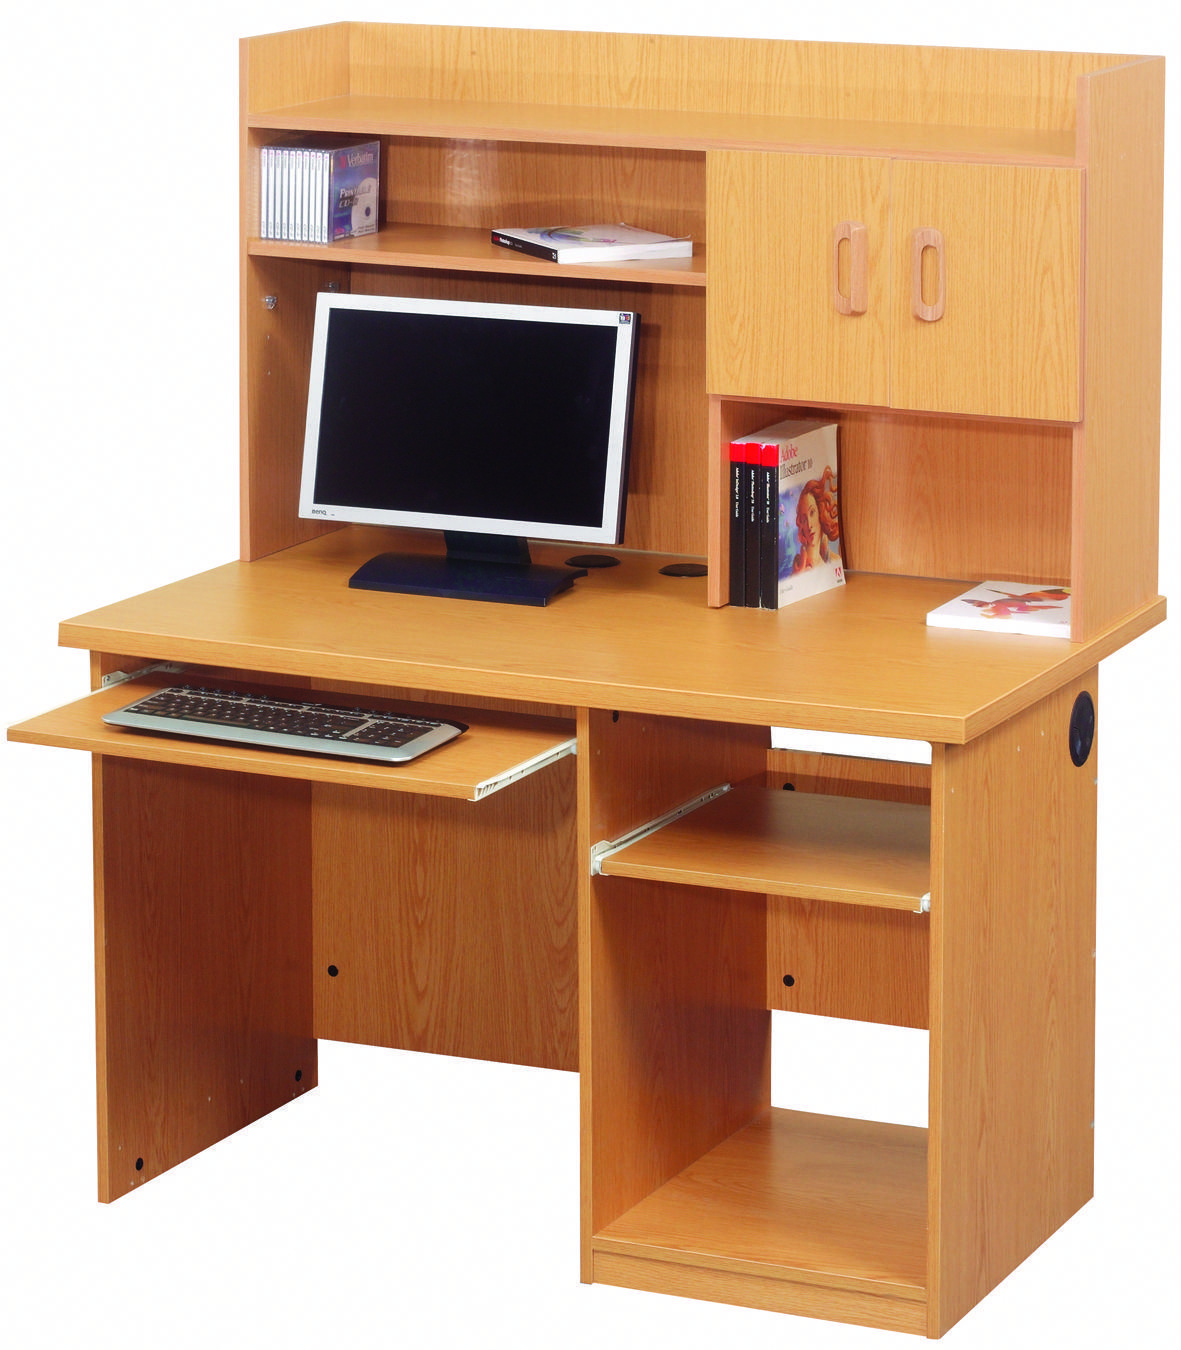 Computer Desk Cheap Computer Desk Ikea Computer Desk Target Gaming Computer Desk Computer Desk Computer Table Design Computer Furniture Computer Table